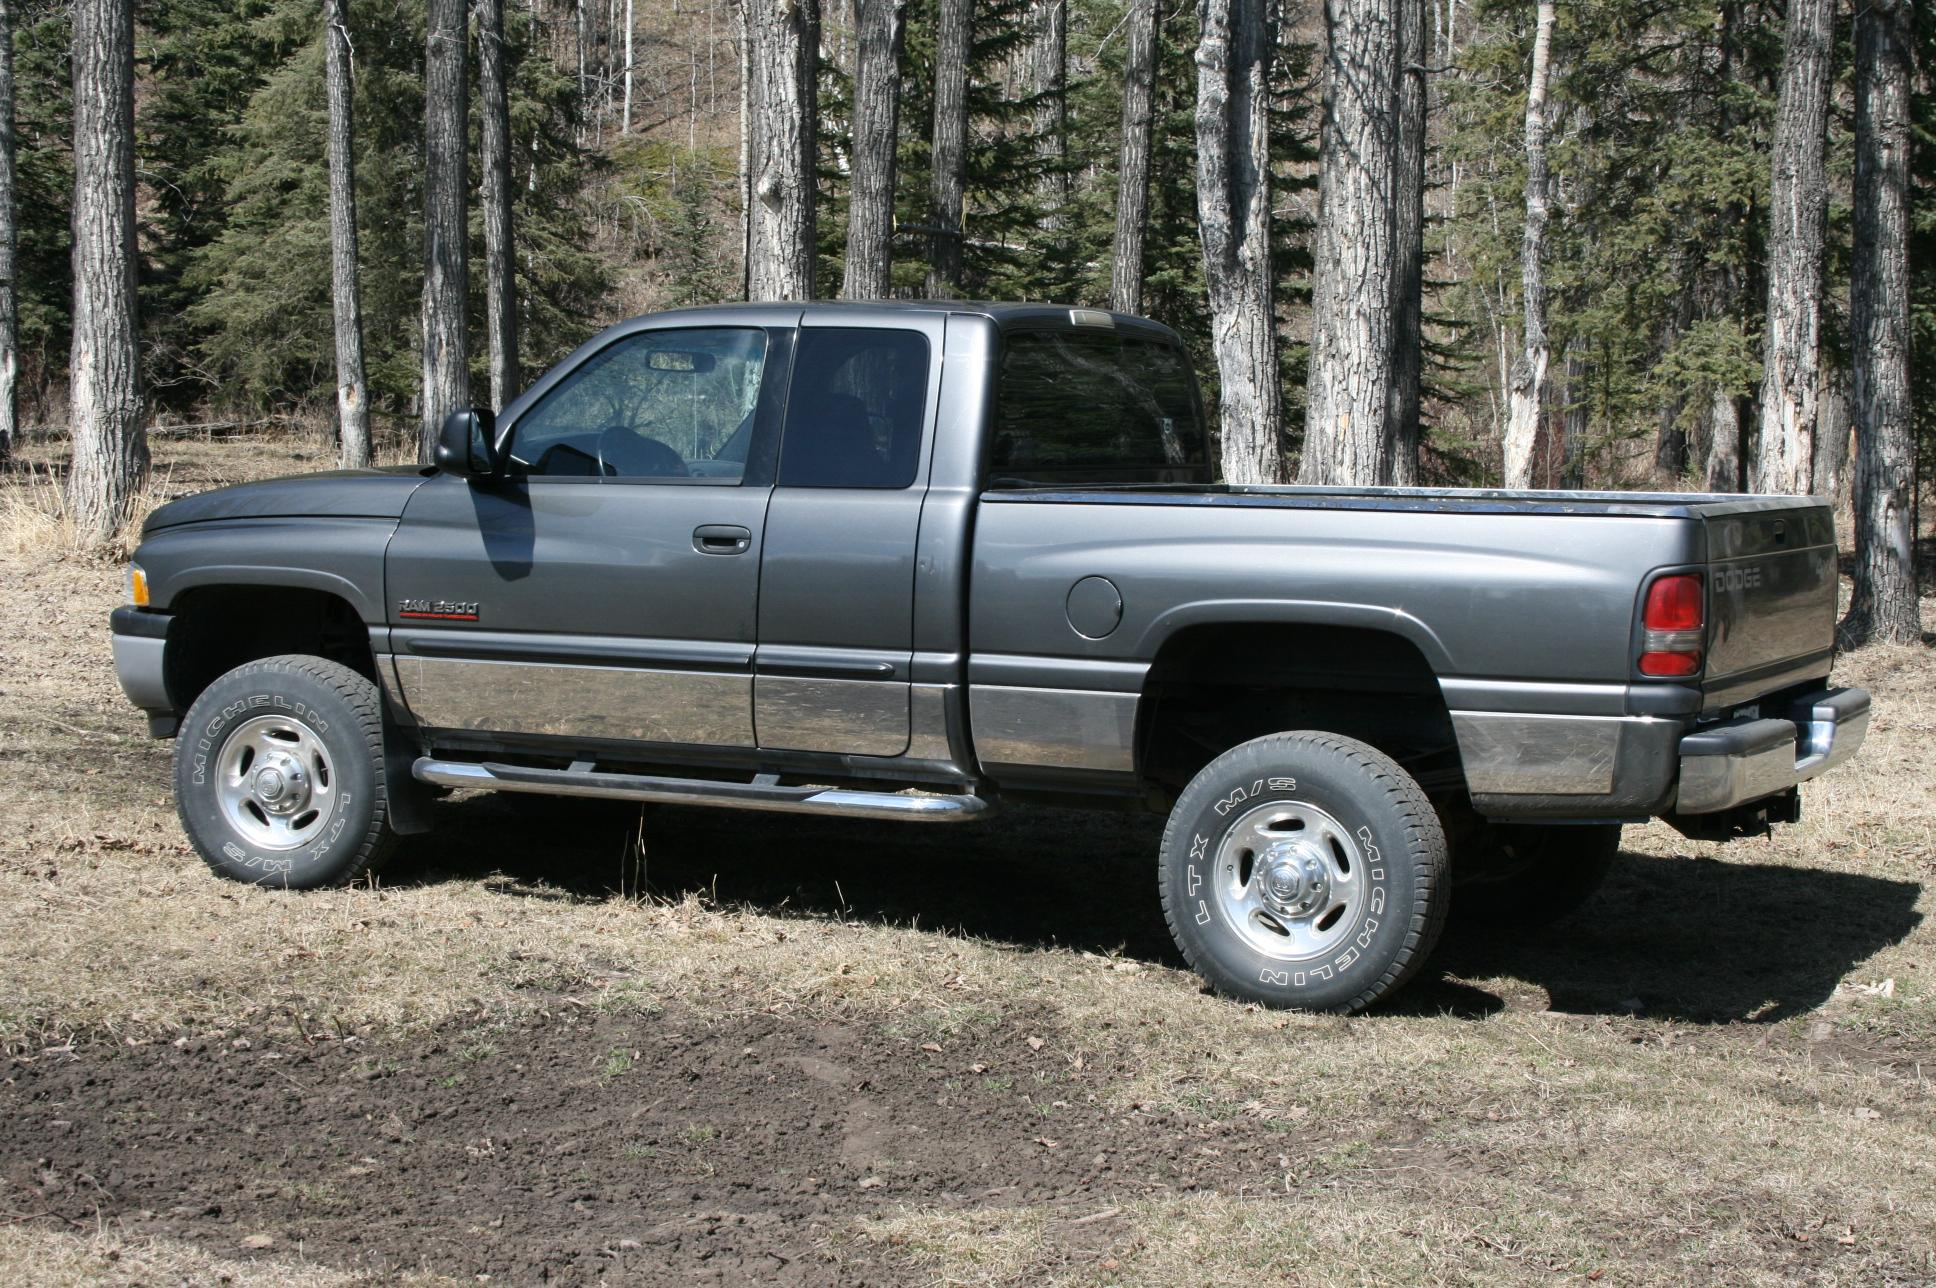 DODGE RAM 1500 [USA] Extended Crew Cab Pickup (US)